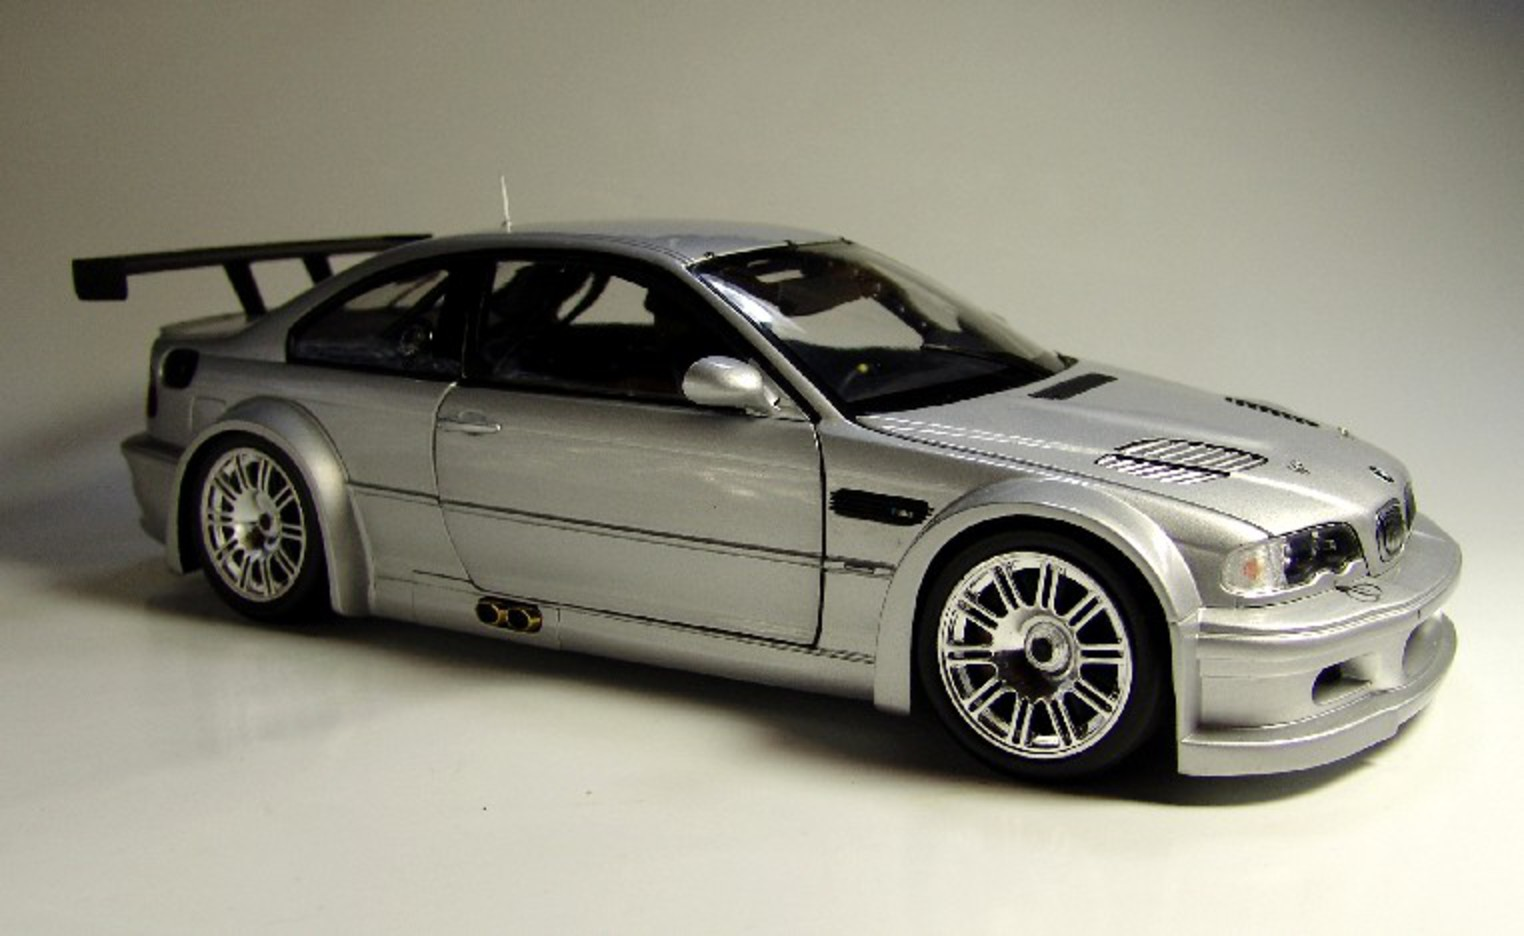 BMW M3 GTR - huge collection of cars, auto news and reviews, car vitals,